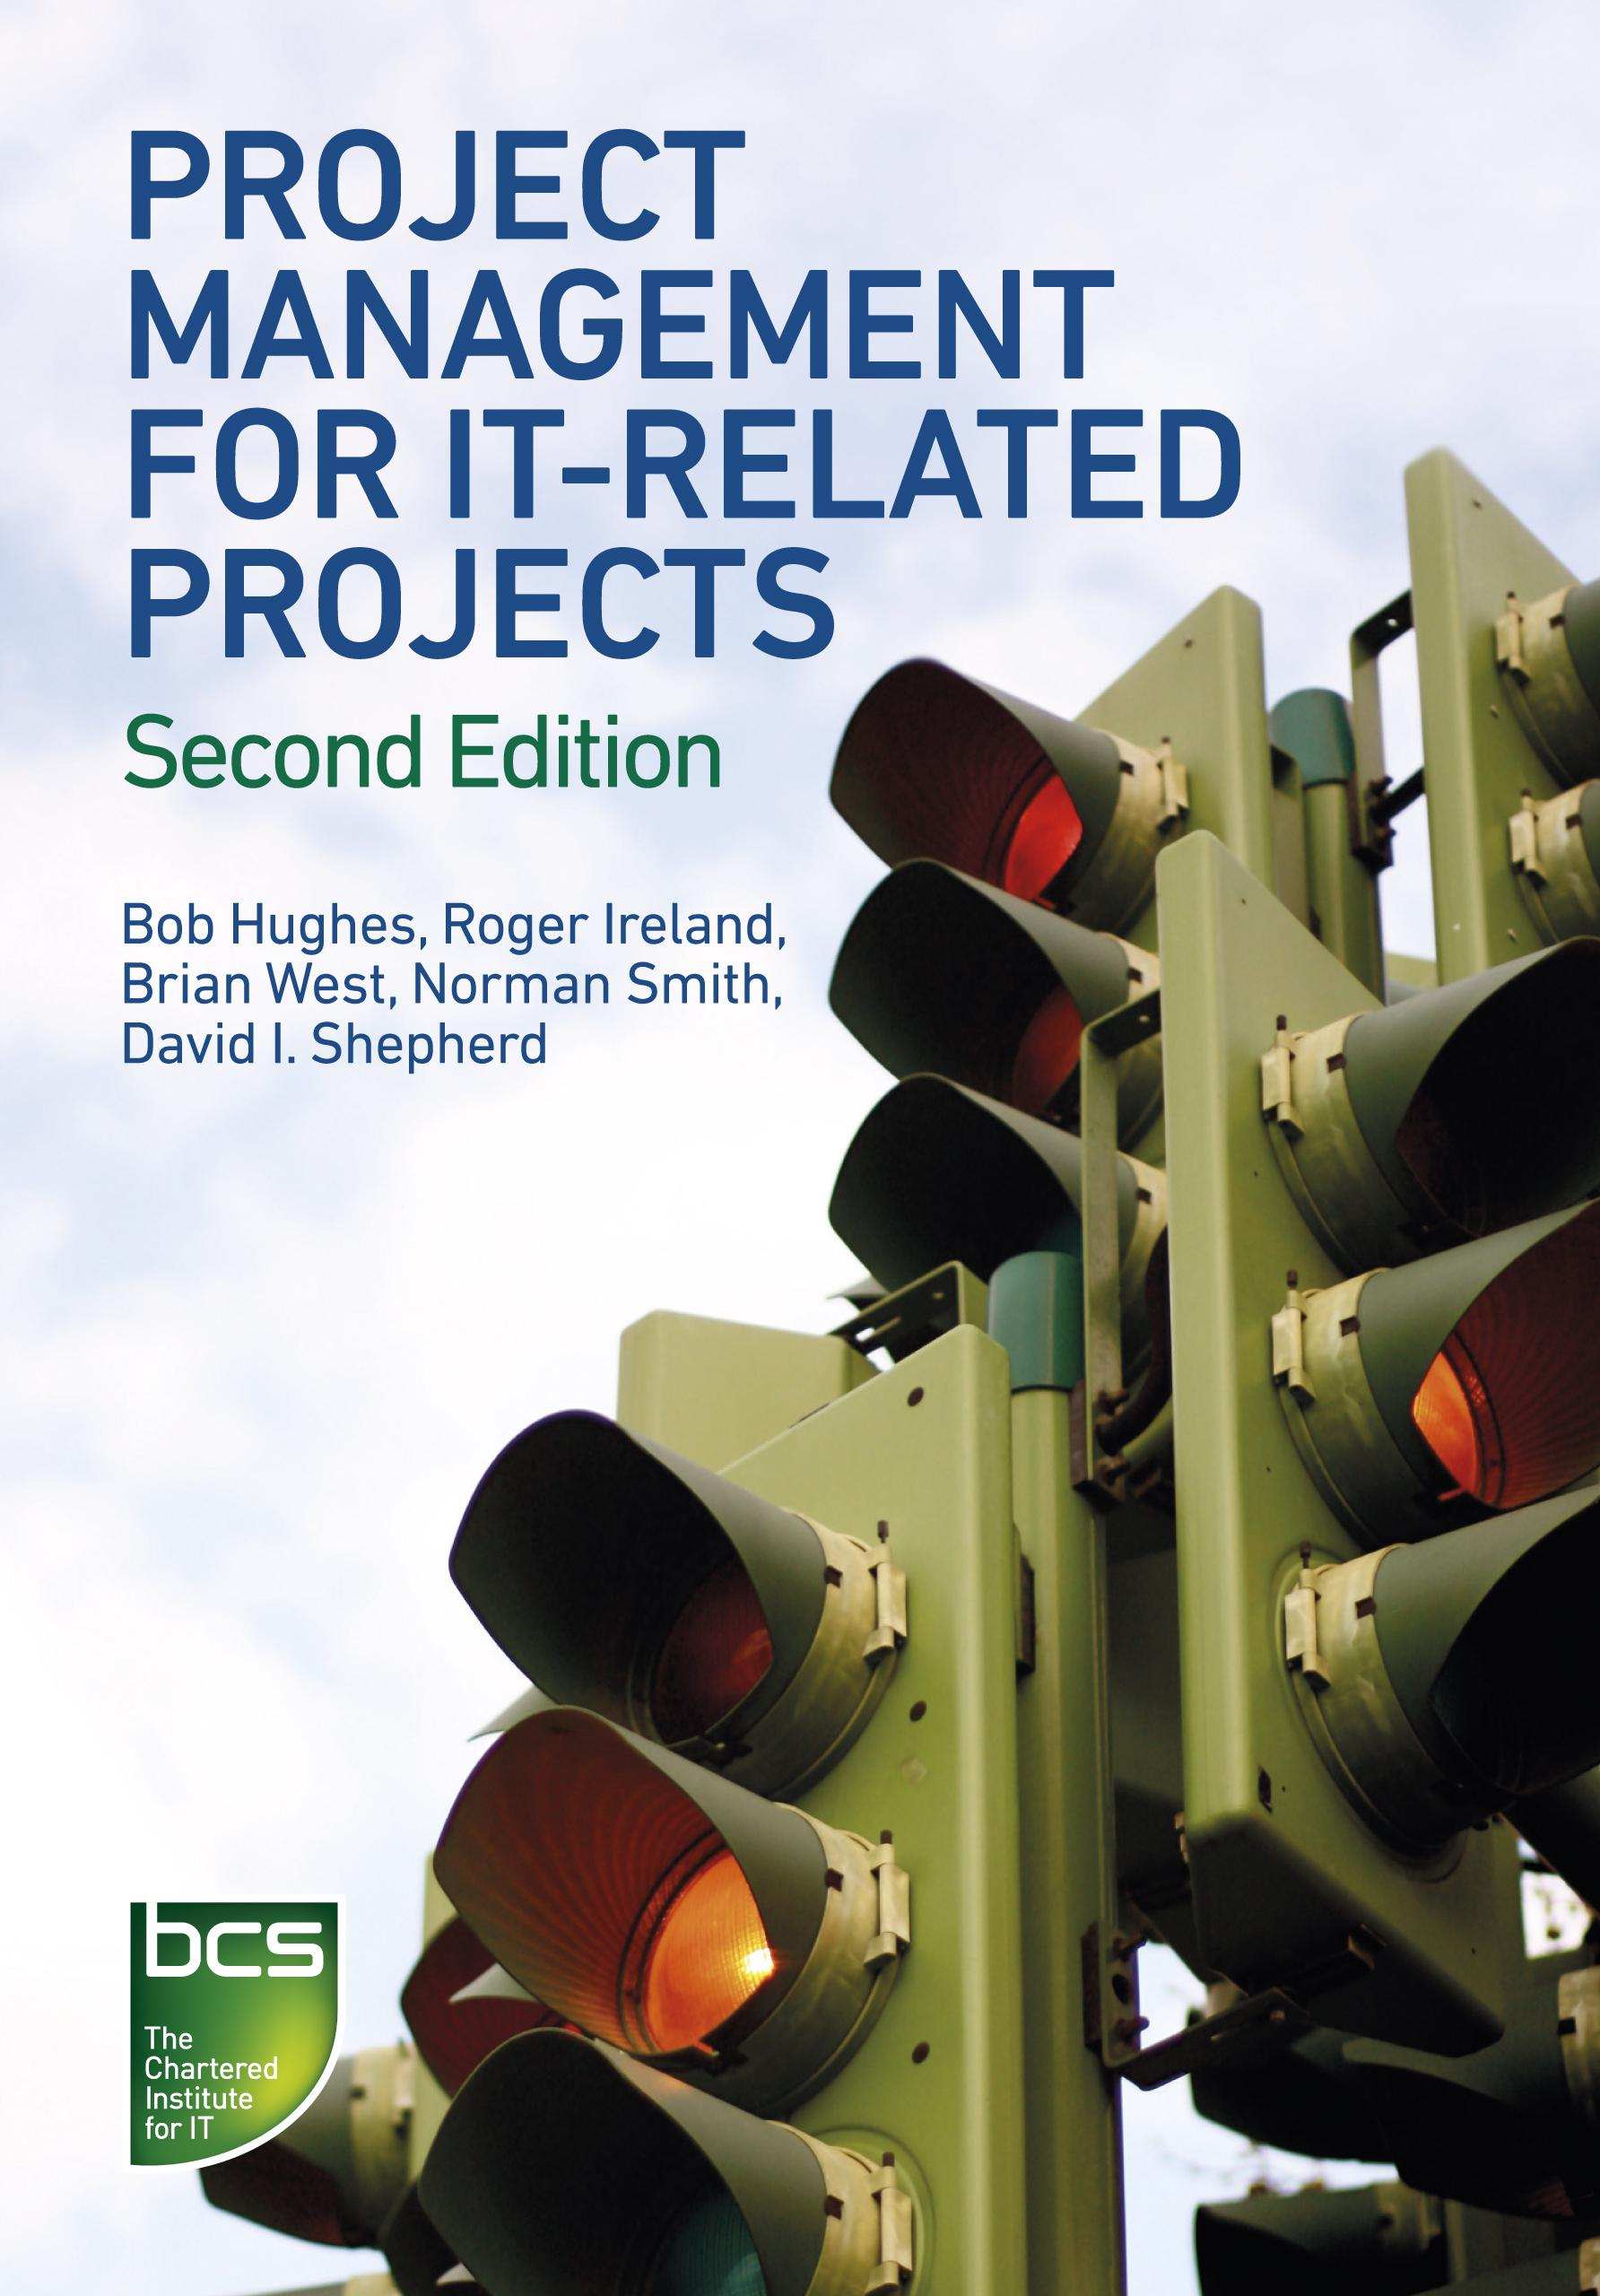 Project Management for IT-Related Projects by Bob Hughes, Brian West, David I. Shepherd, Norman Smith, Roger Ireland, ISBN: 9781780171203